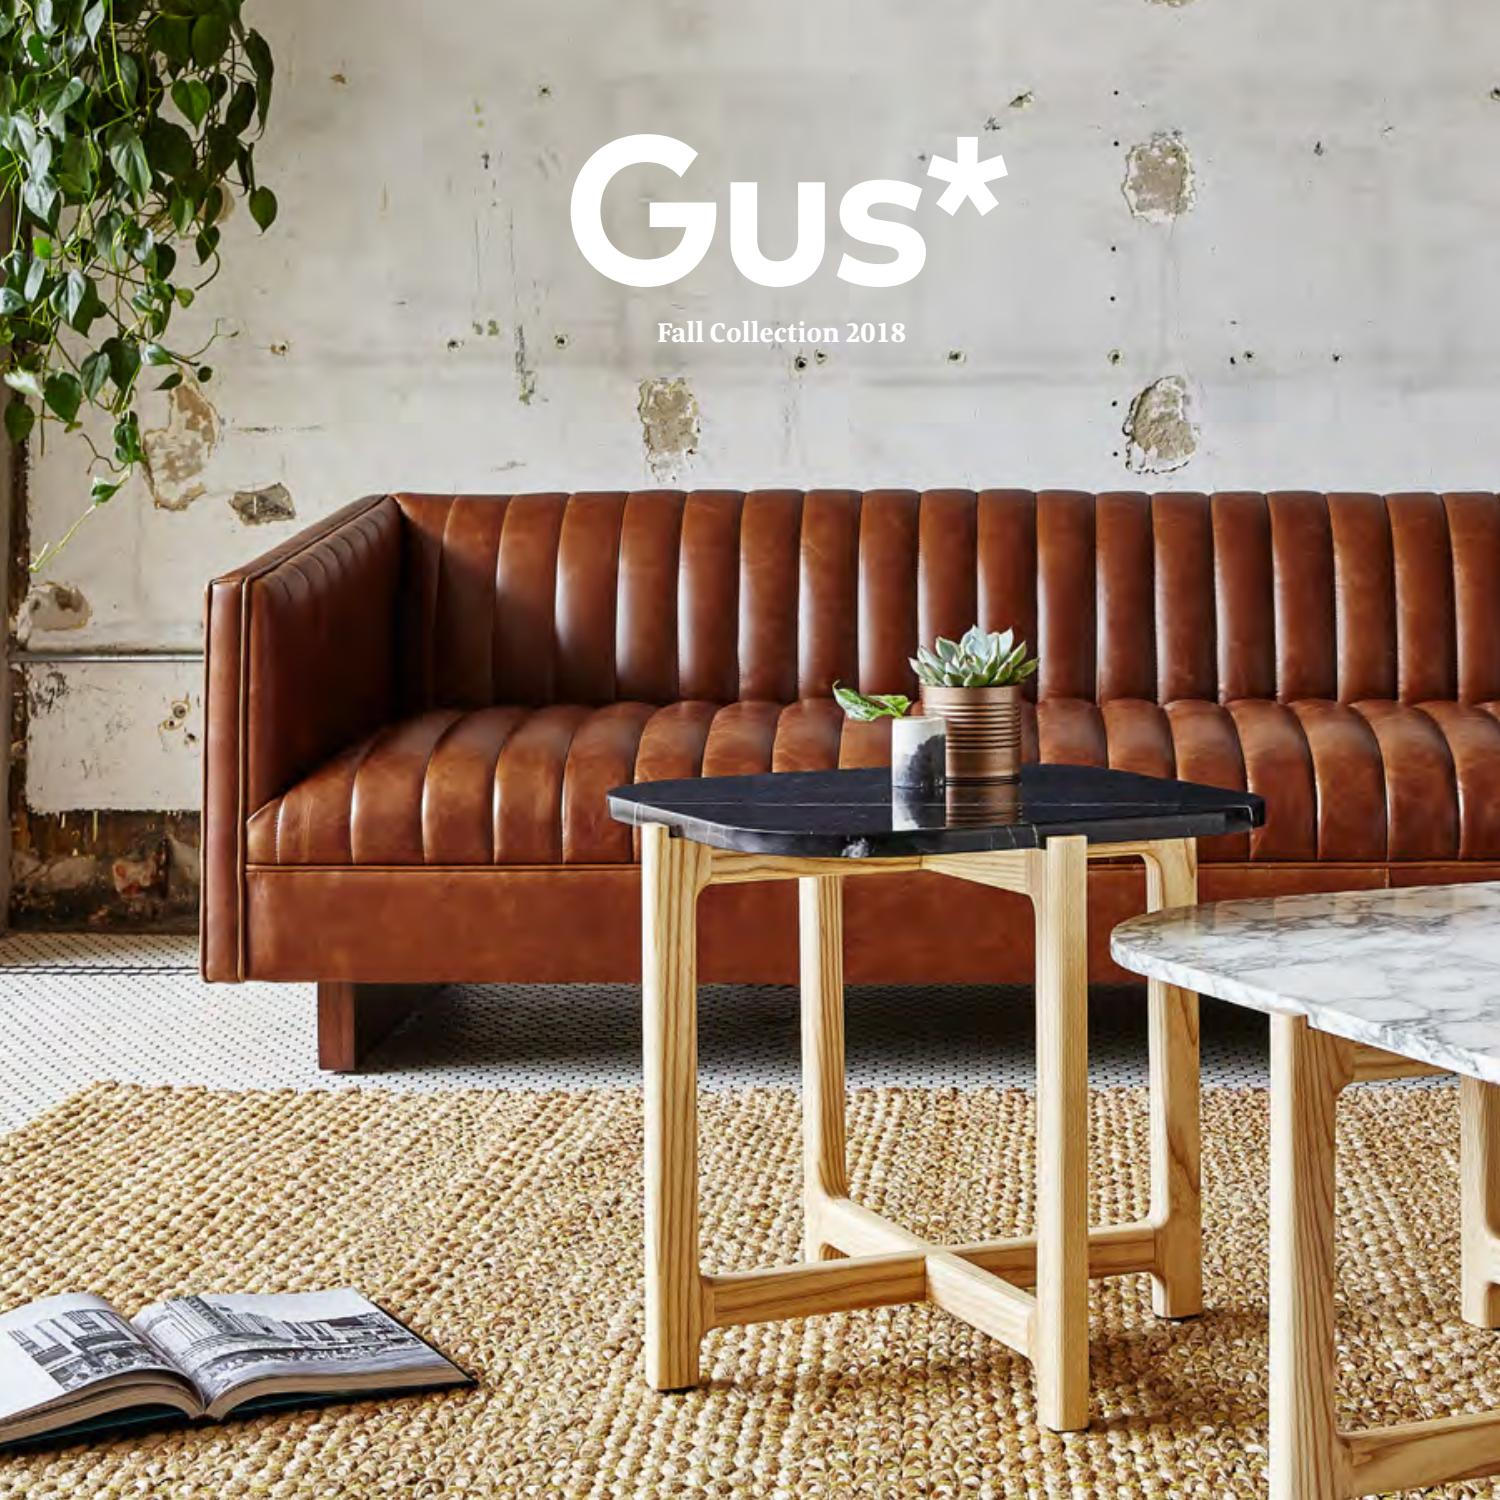 Astonishing Gus Modern Fall 2018 Collection By Gus Modern Issuu Pabps2019 Chair Design Images Pabps2019Com